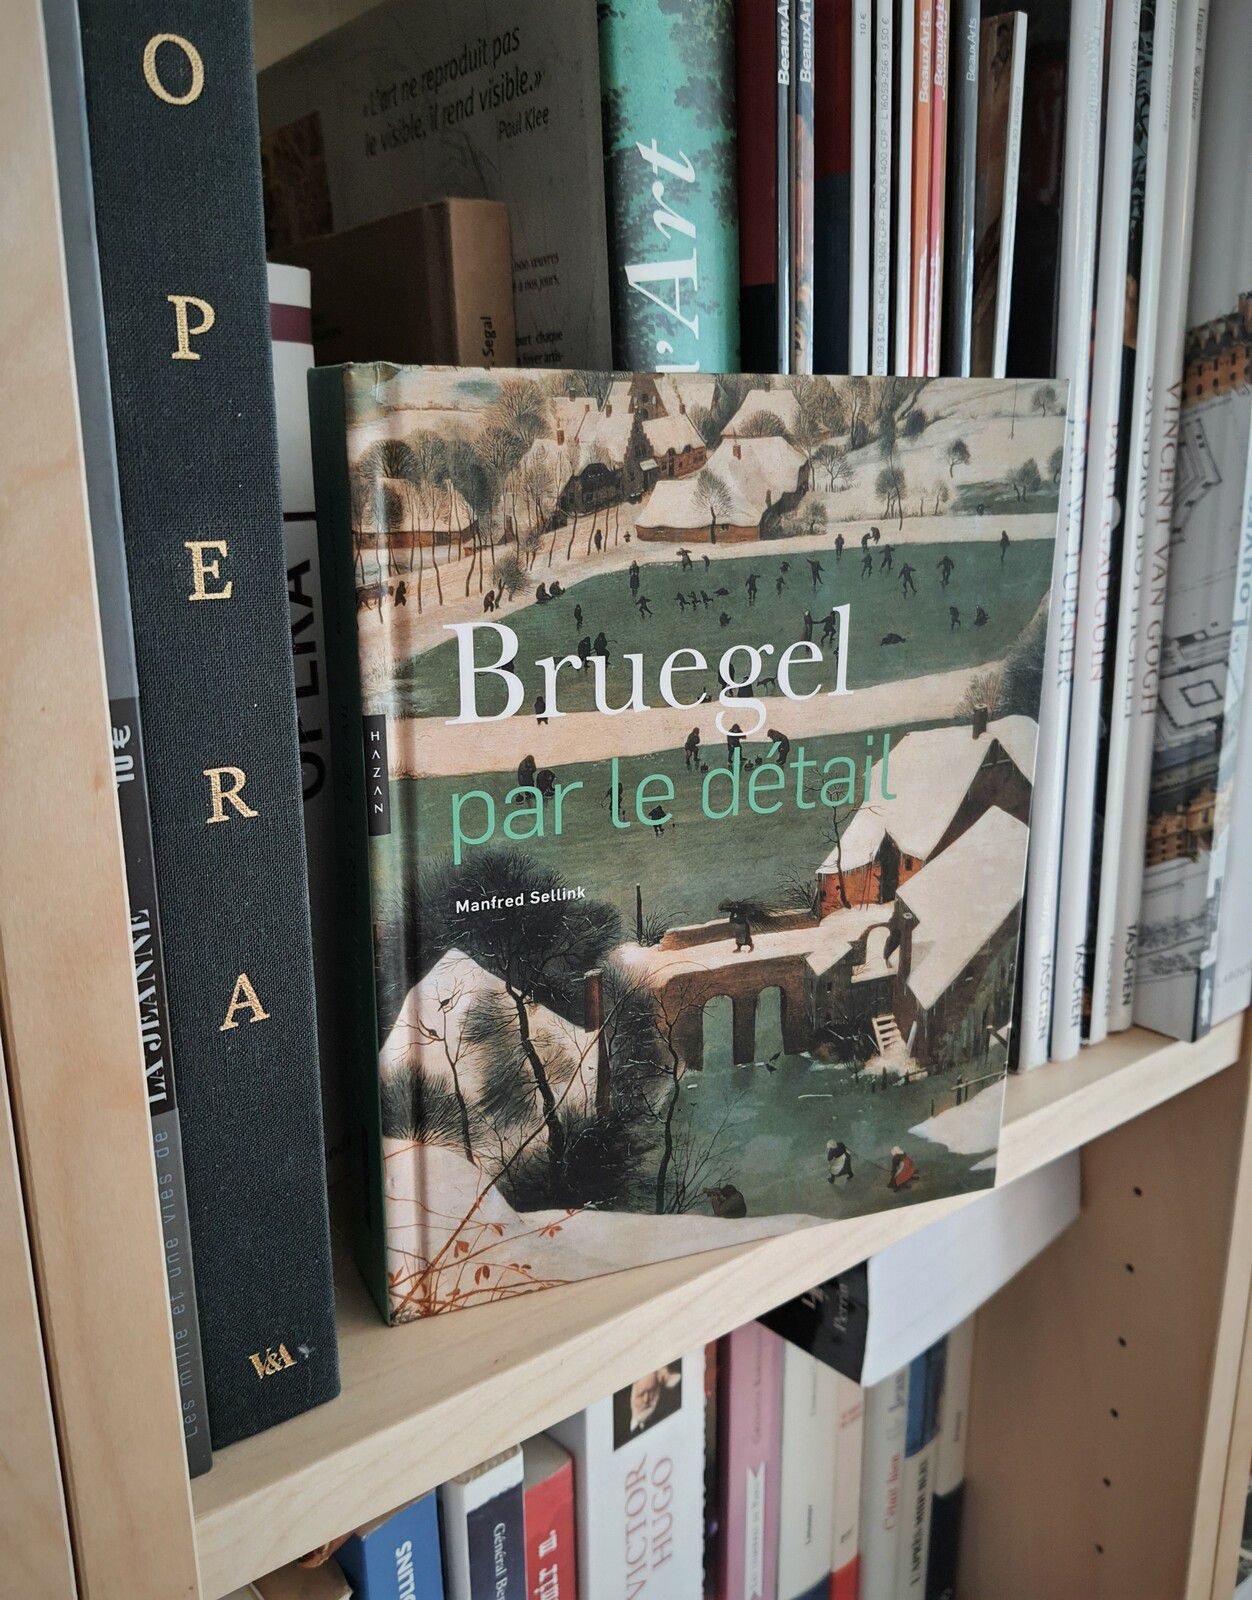 Bruegel par le détail -  Manfred Sellink - Editions Hazan - couverture